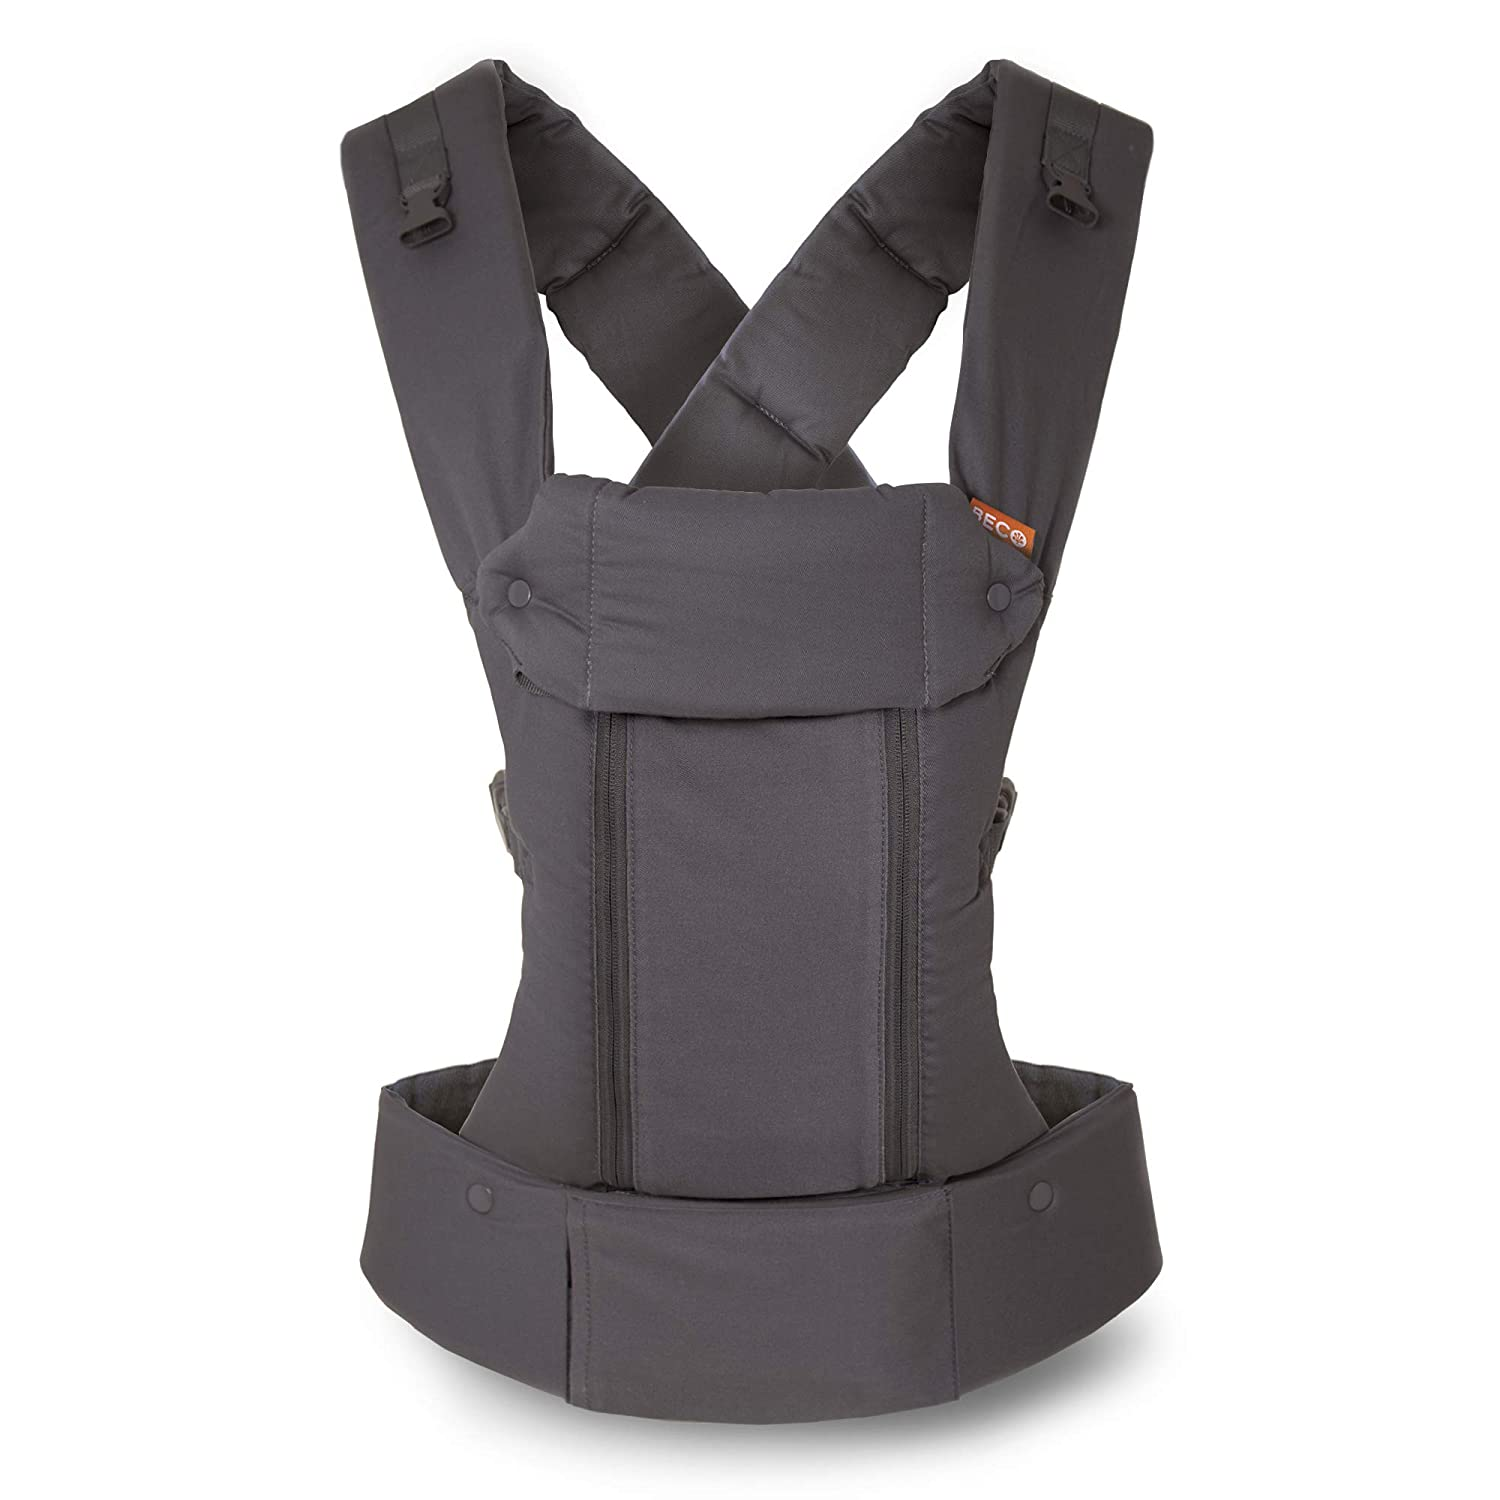 Beco 8 - Dark Grey - All Seasons 360 Ergonomic Airflow Baby Carrier comes Complete with Infant Insert, Removable Lumbar Support, 360° of Comfort for Parent and Child Beco Baby Carrier BECO8G01